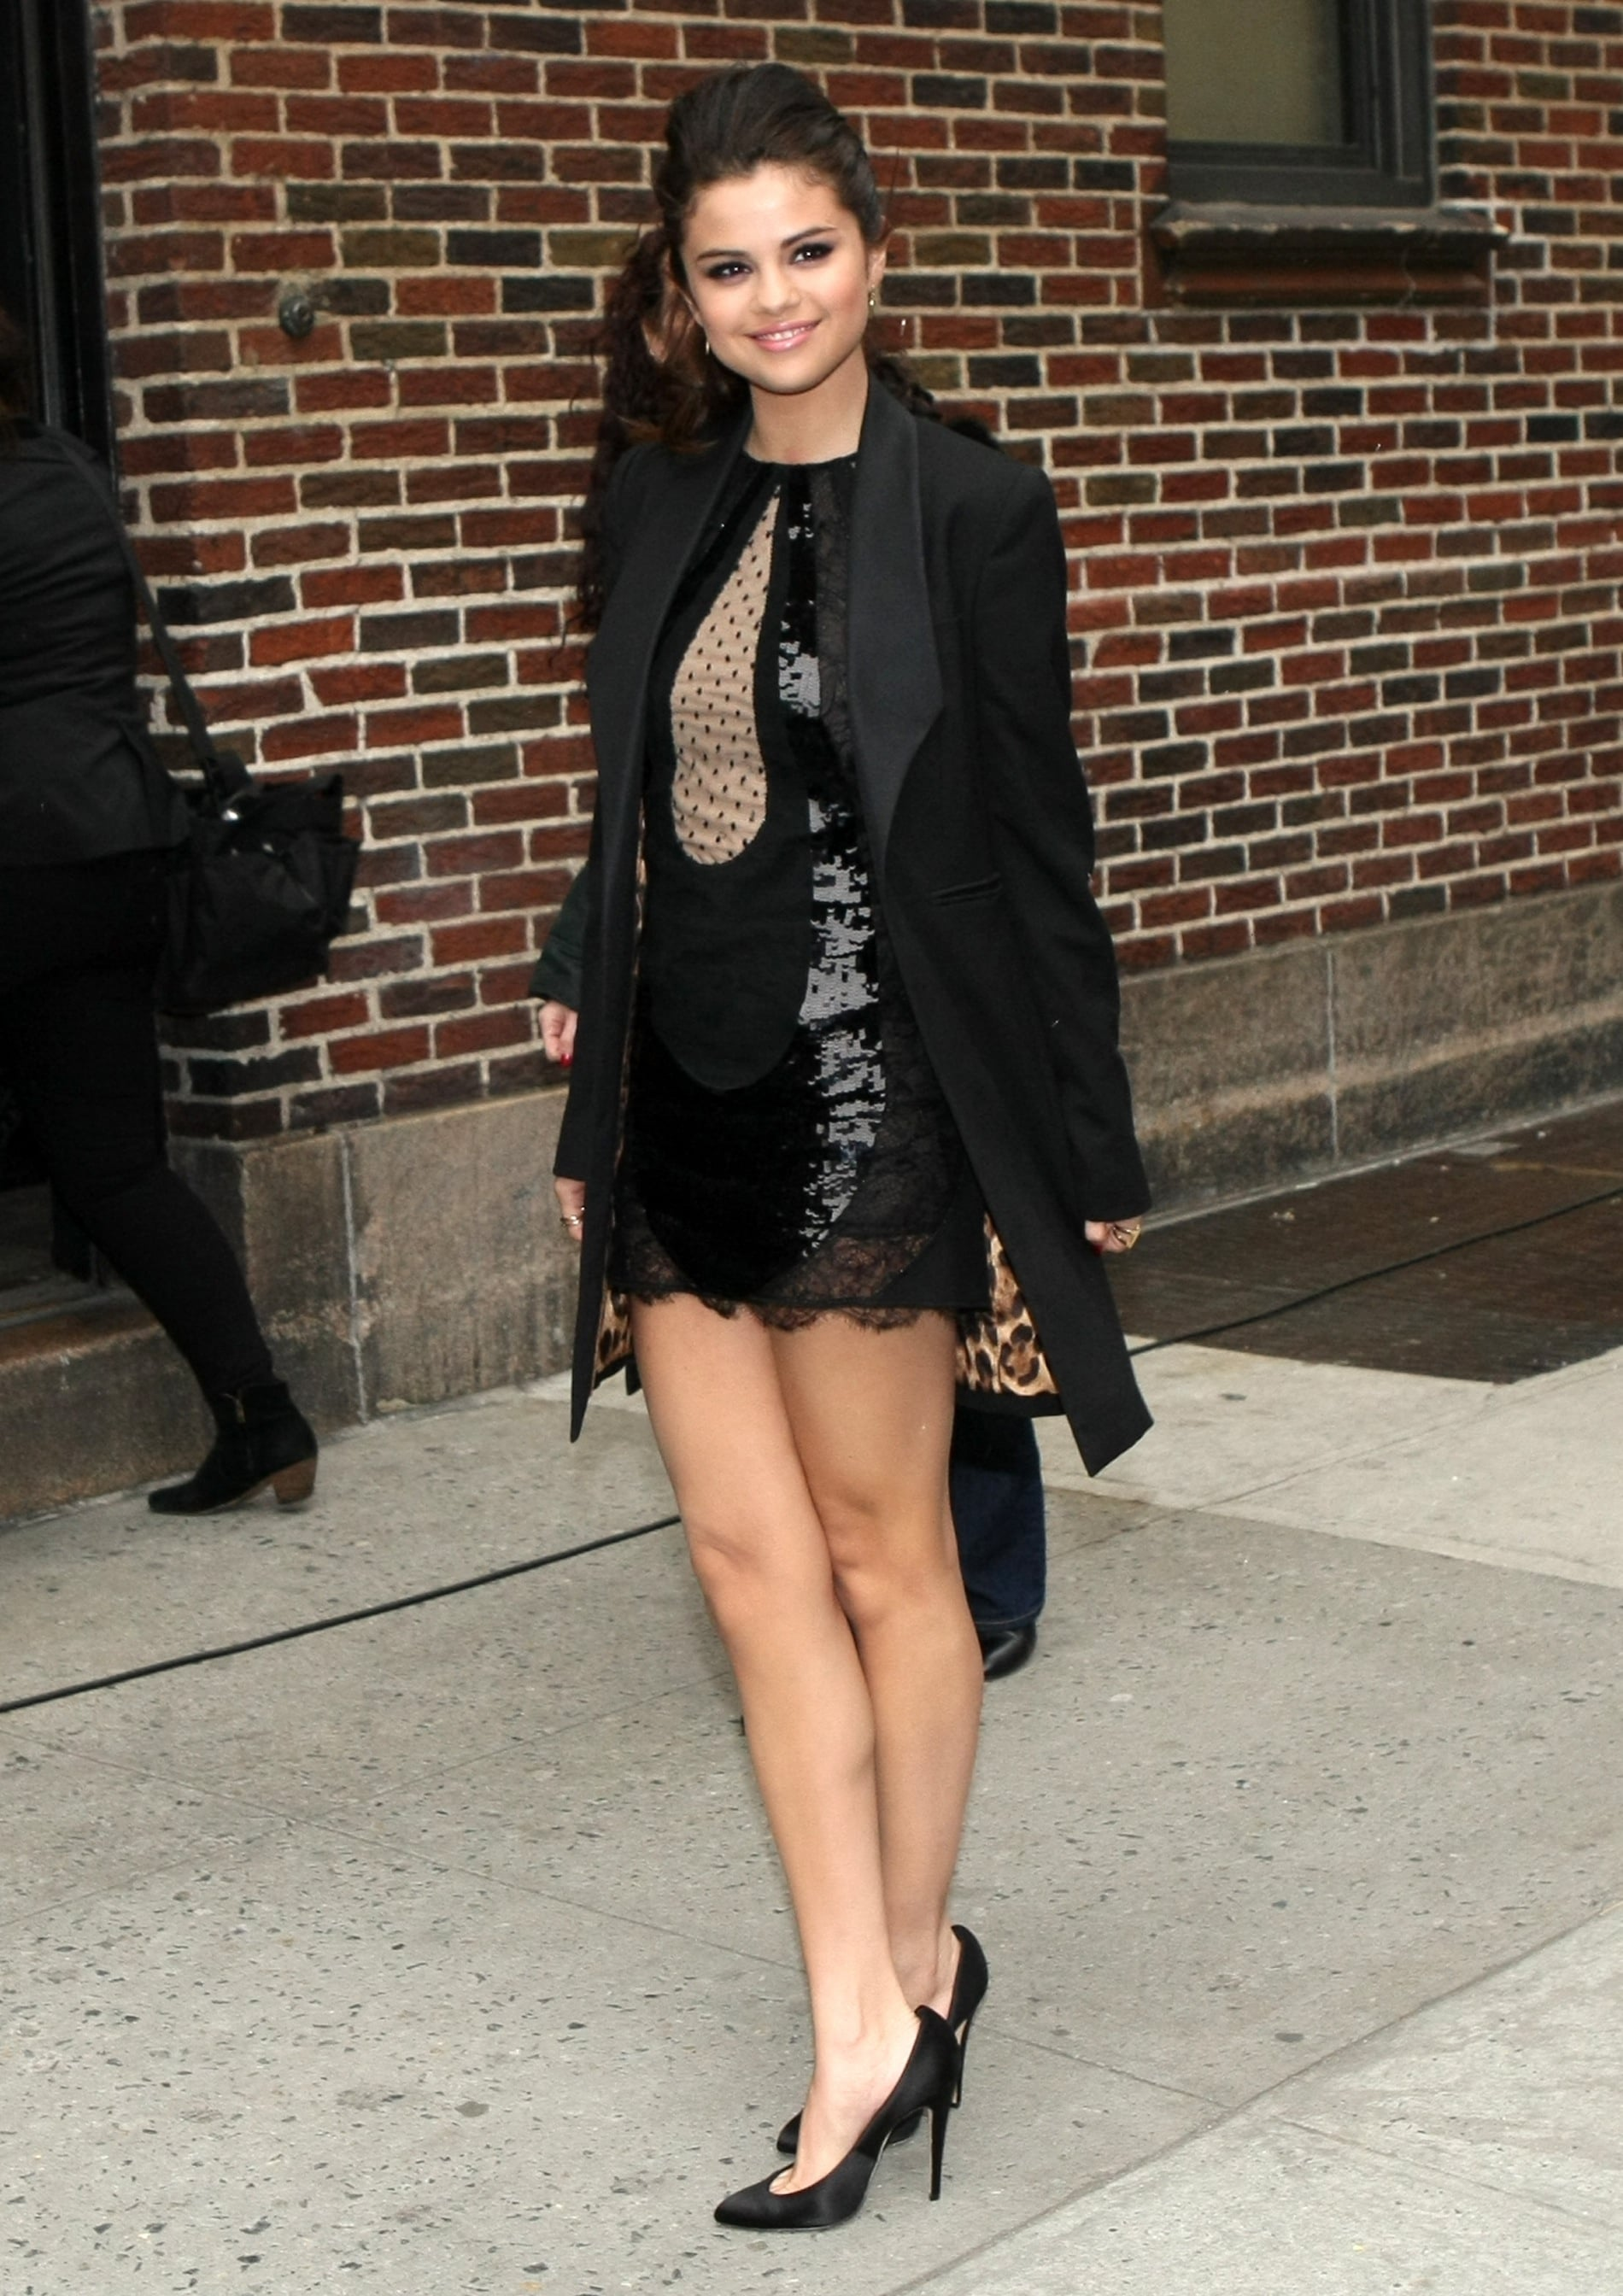 Selena slipped into a sequin and lace Versace LBD, featuring a playful polka-dot inset, while visiting the Late Show With David Letterman in March 2013.